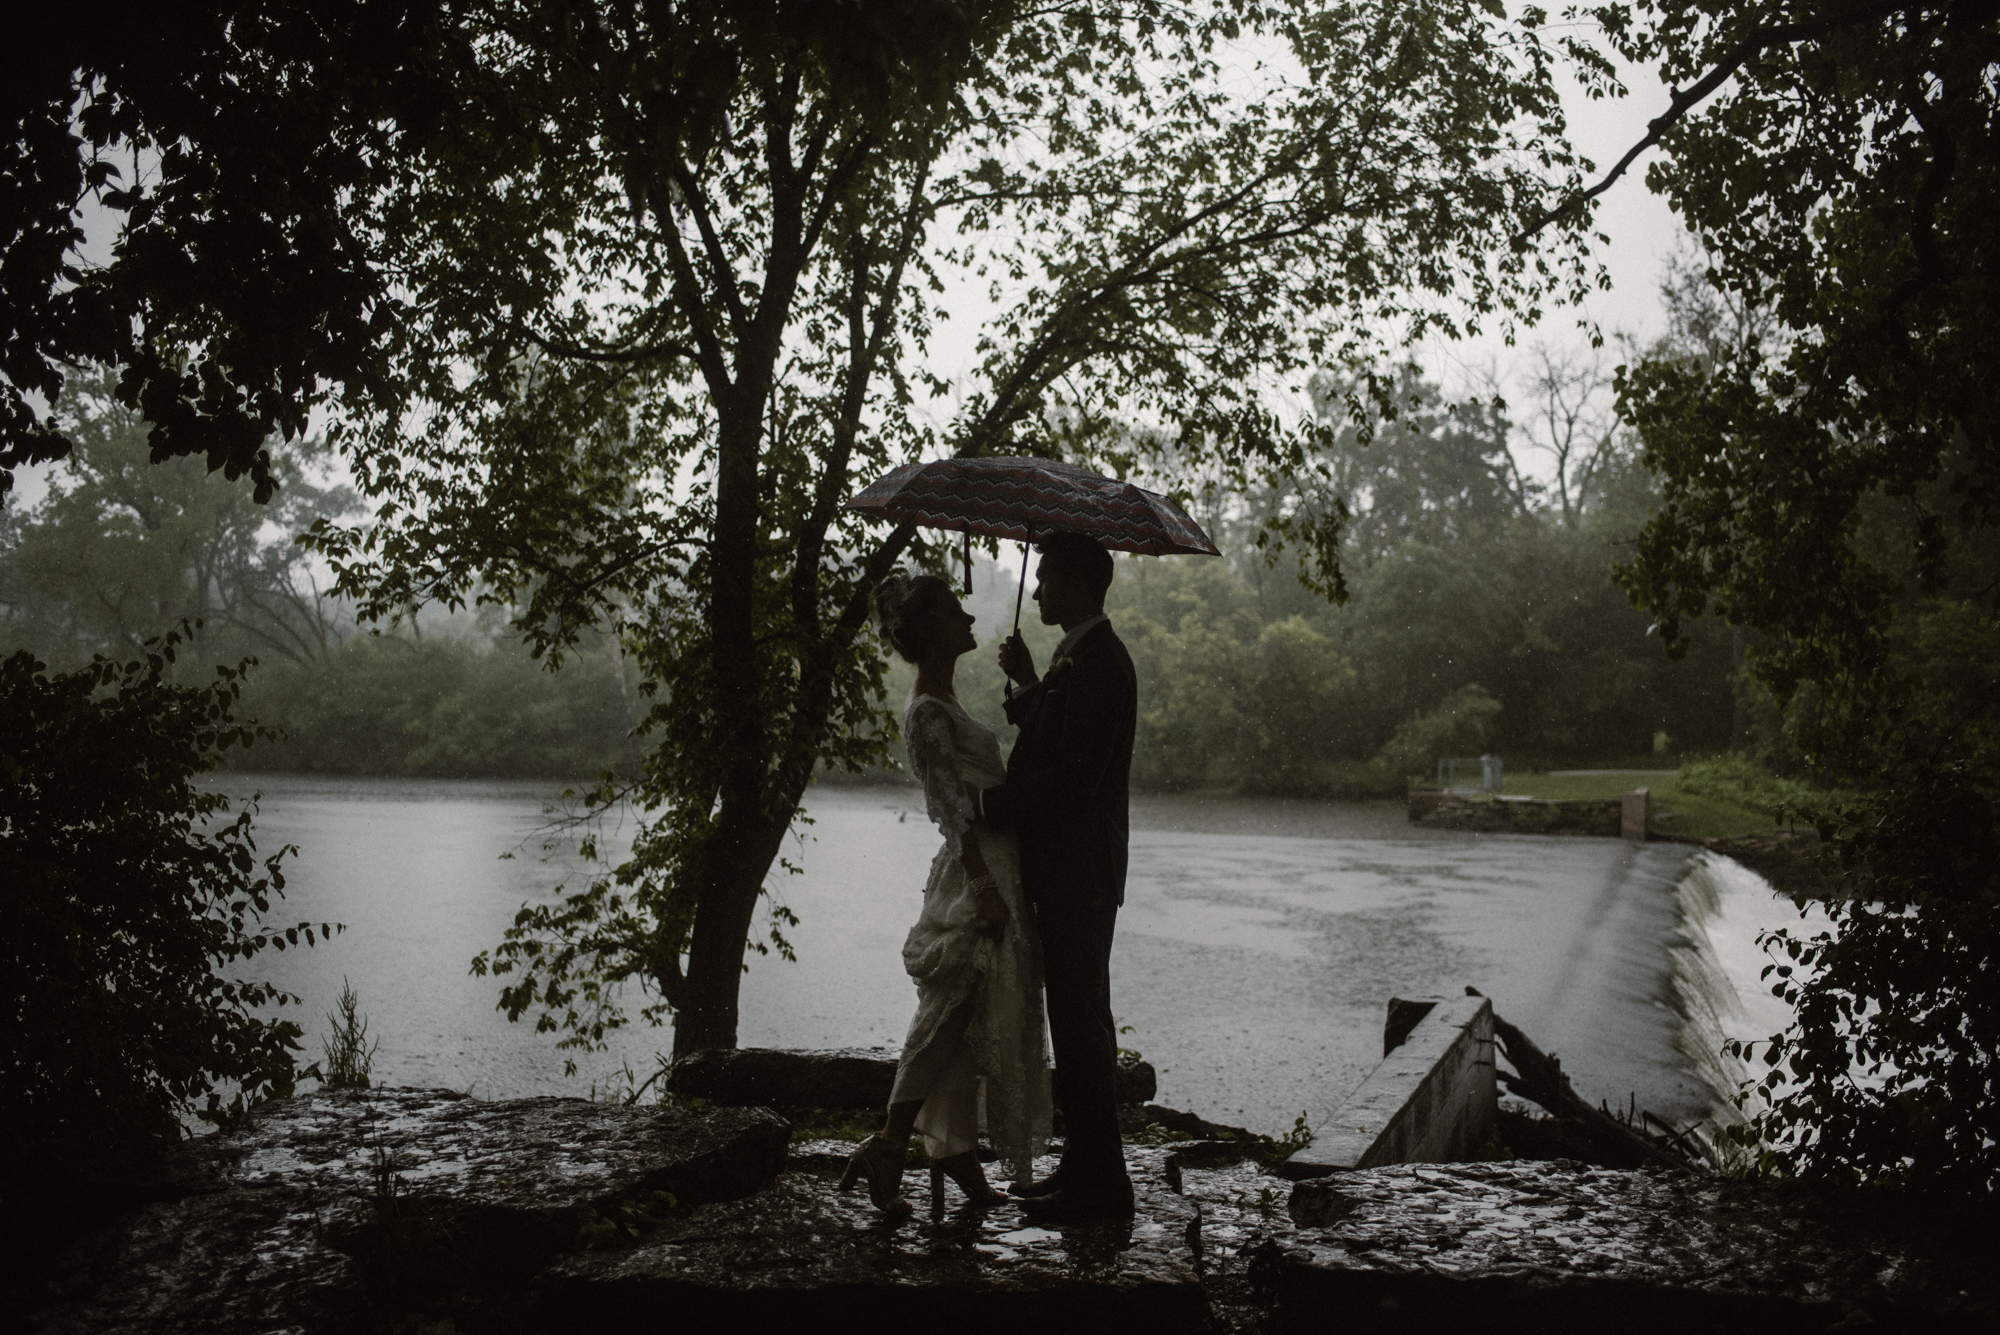 Mairi and Jude - Rainy Backyard Wedding - Intimate Wedding - Fun Reception Photos - Chicago Wedding Photographer - Catholic Wedding - White Sails Creative - Virginia Backyard Wedding Photographer_39.jpg